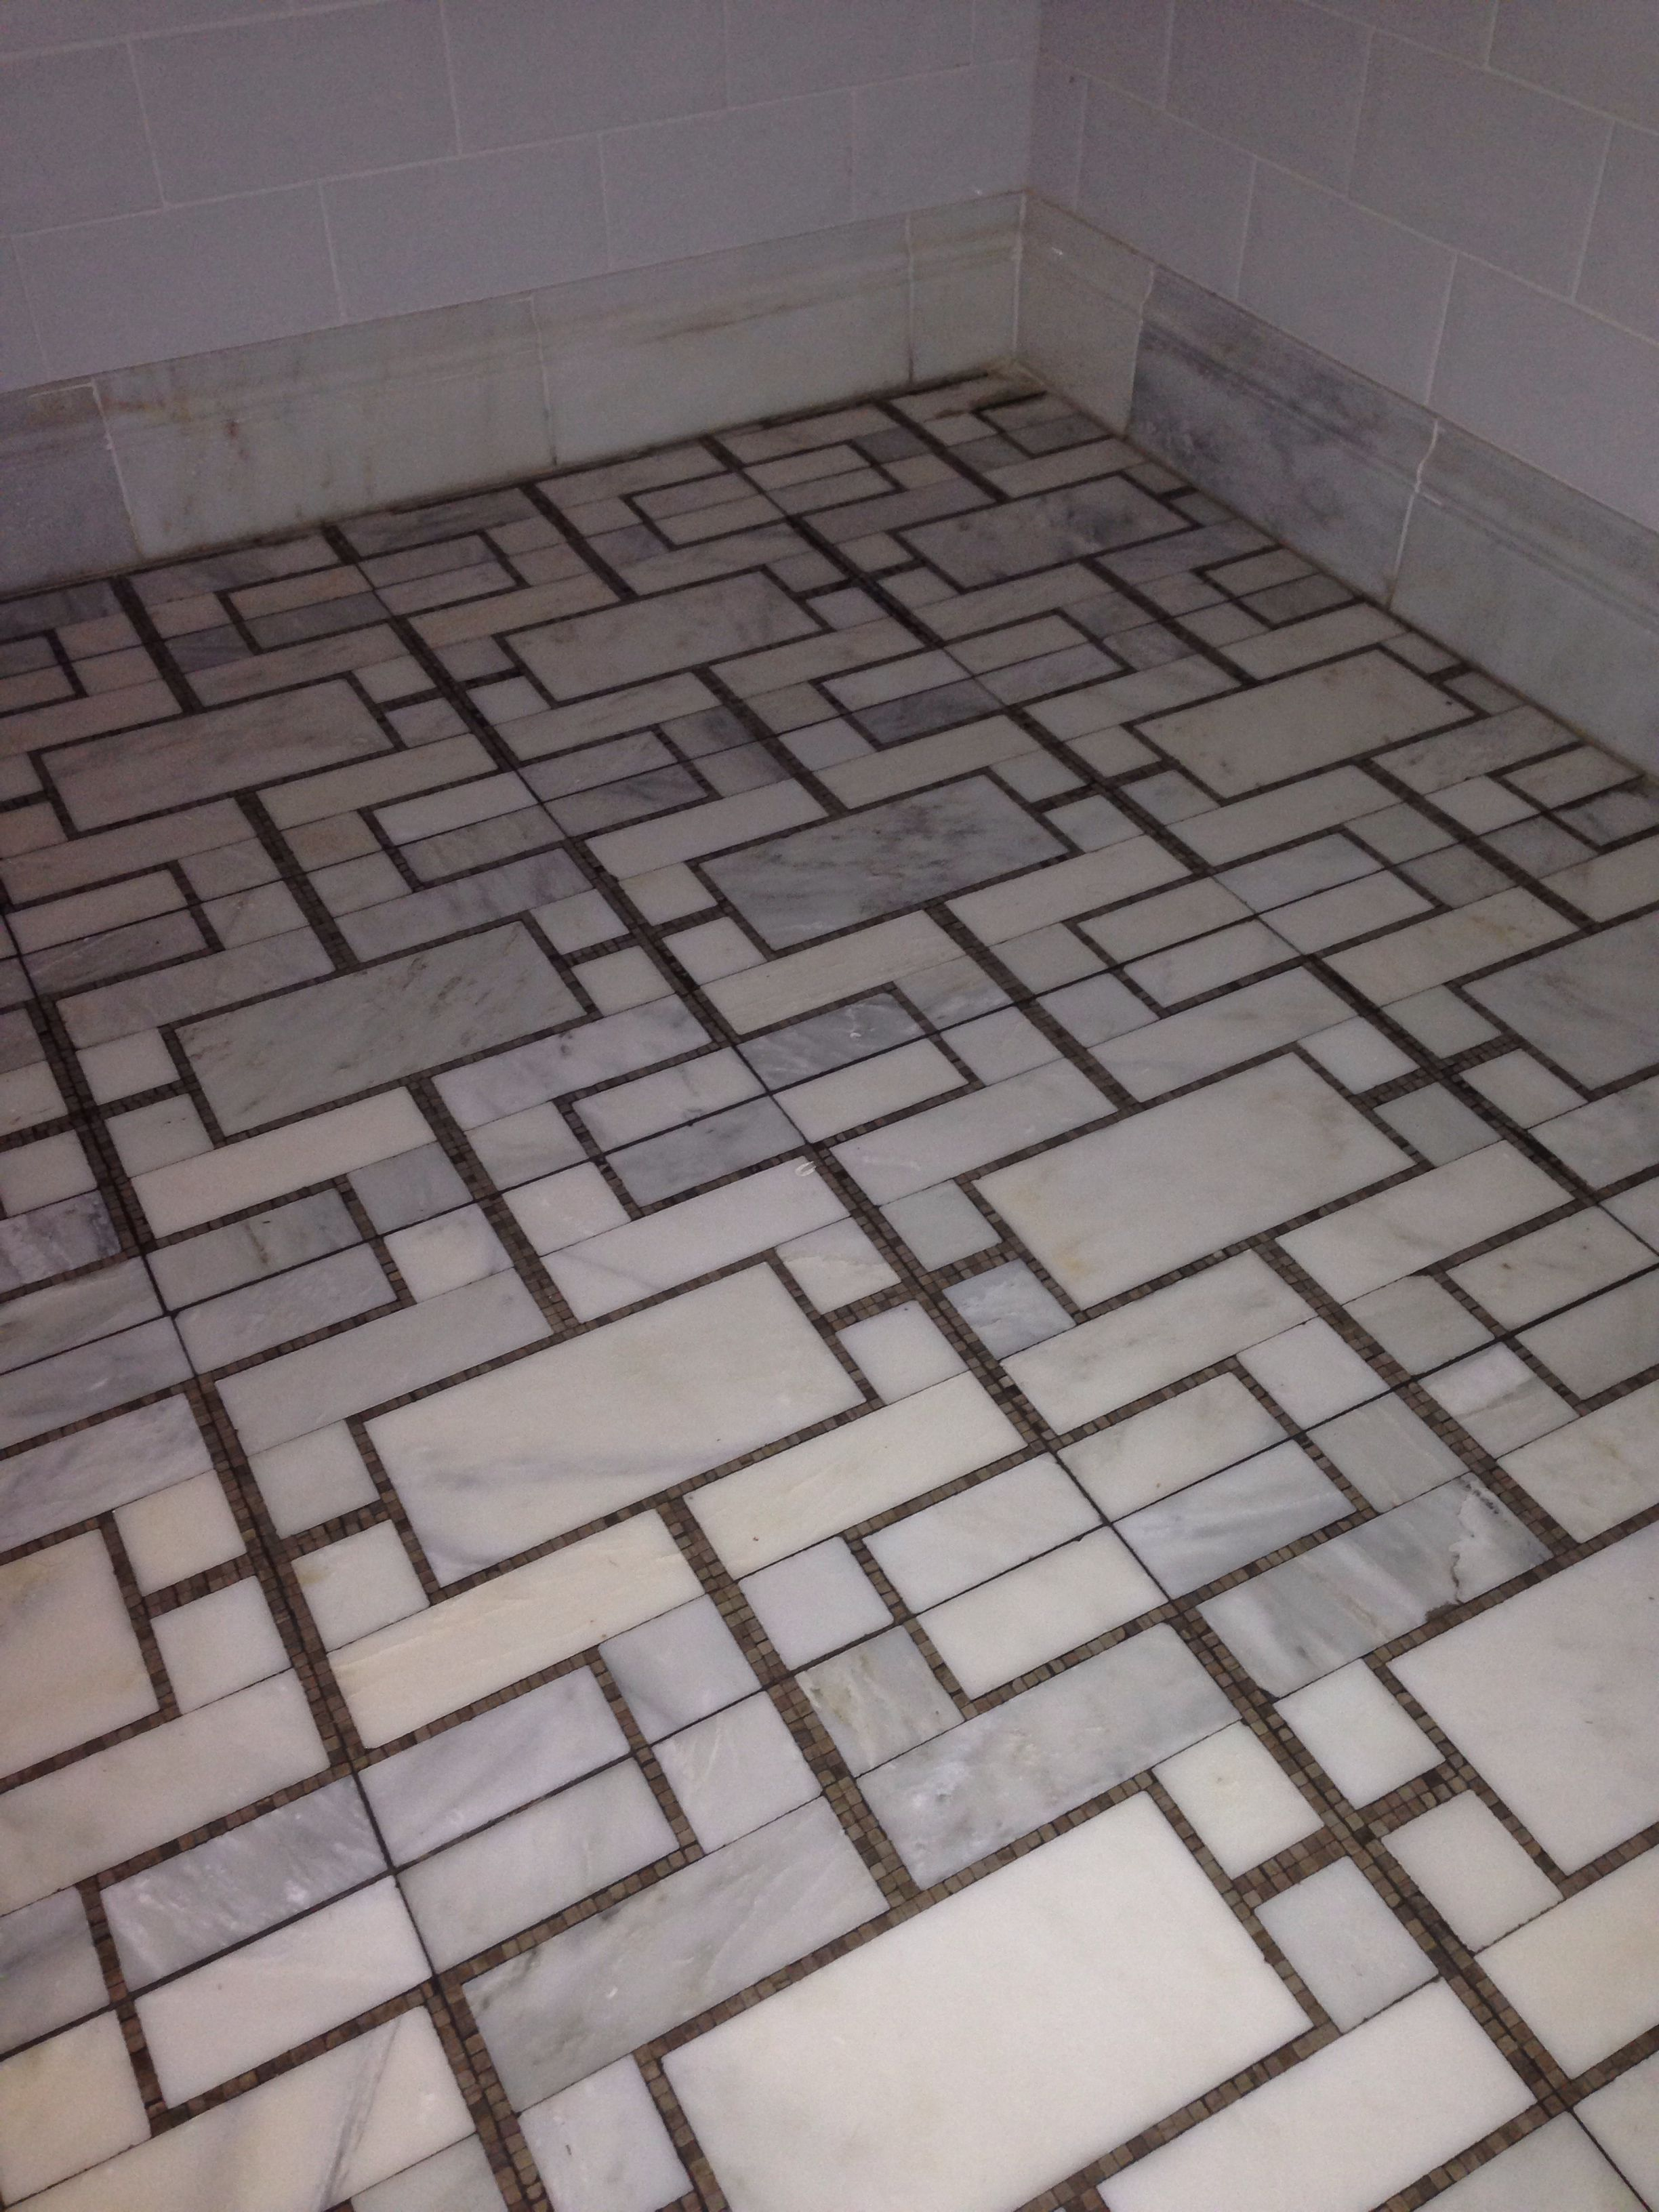 Loving this tile floor pattern master bath floors for the loving this tile floor pattern master bath floors dailygadgetfo Image collections